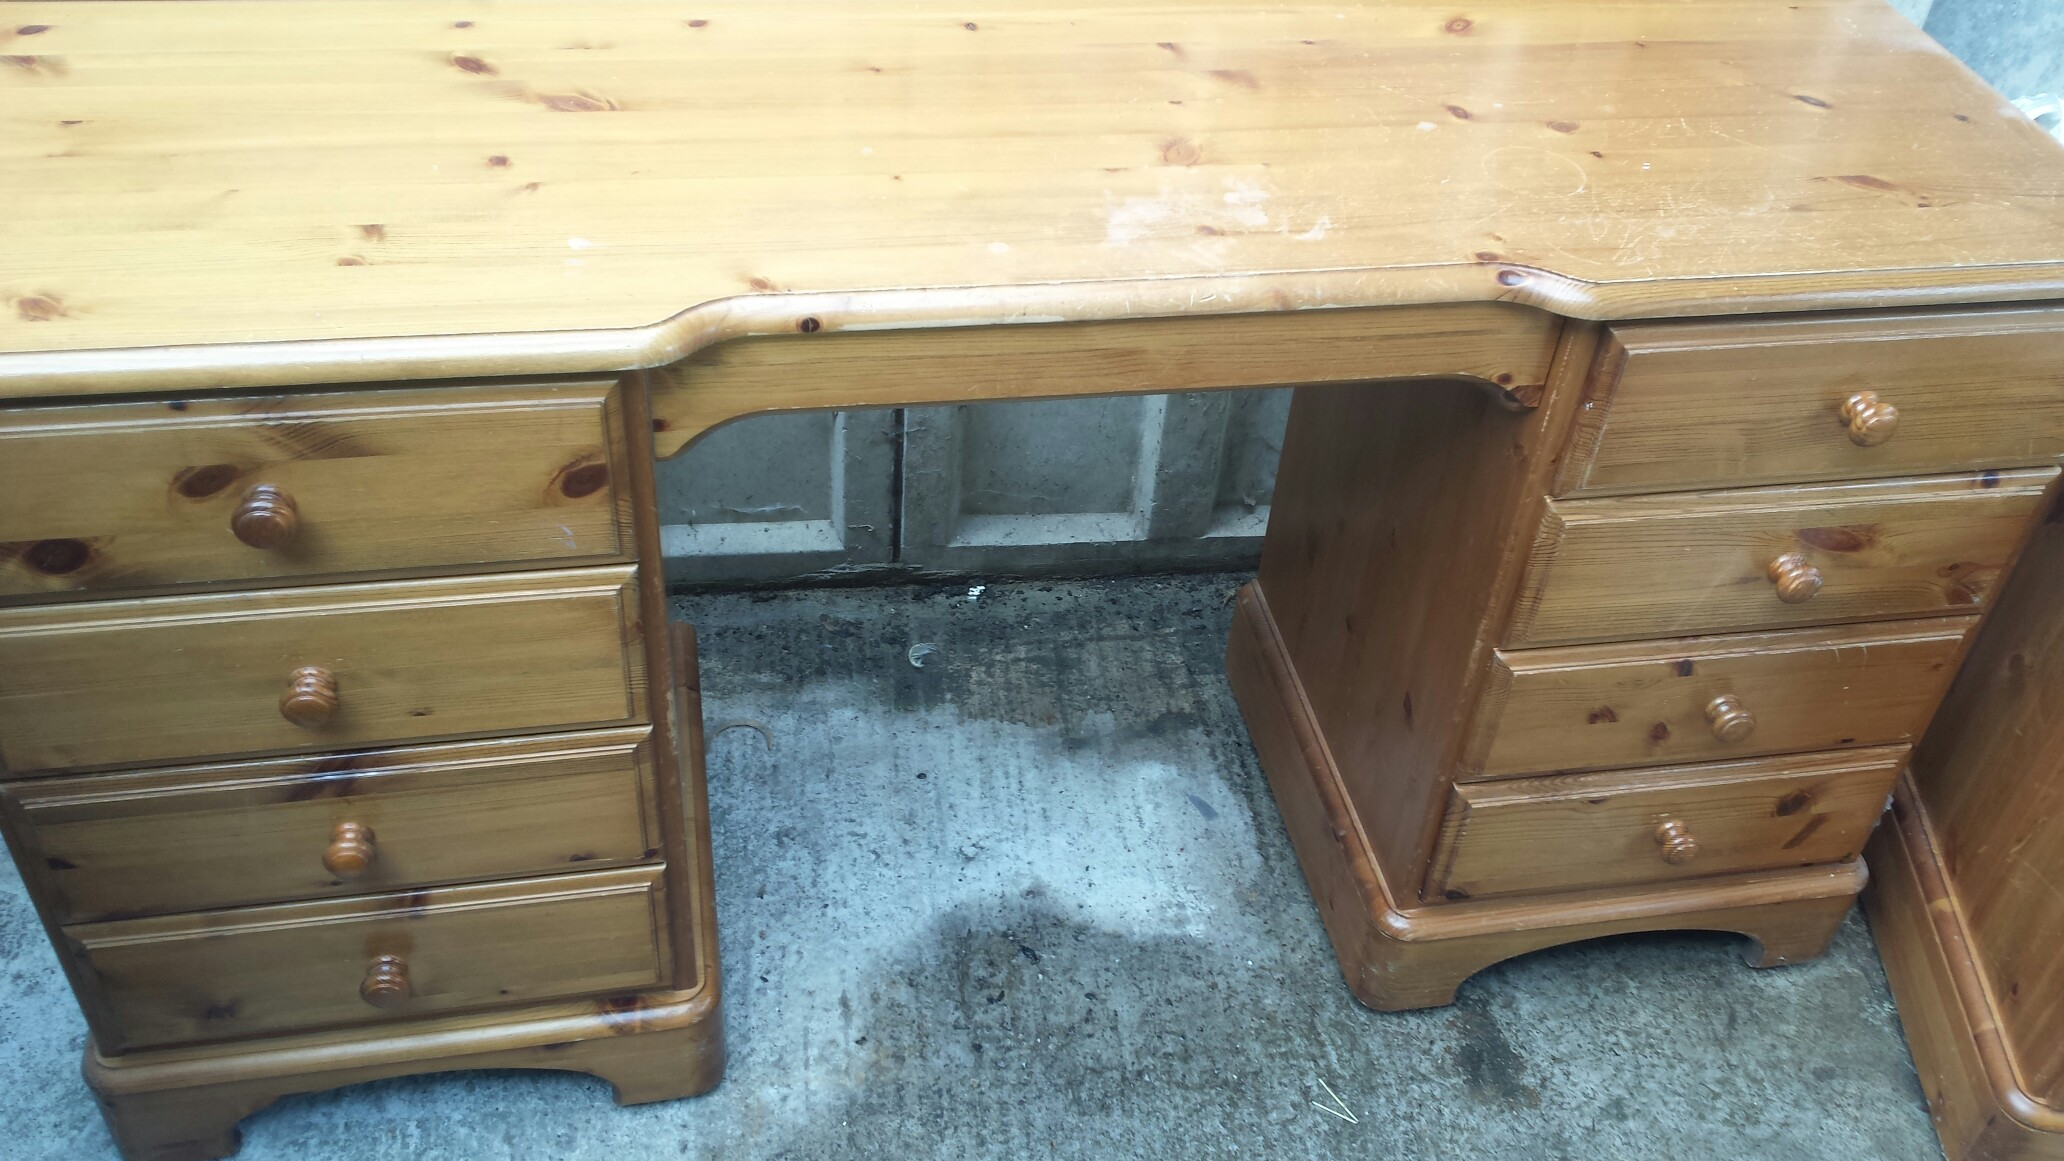 Ducal Dressing Table for sale in UK View 21 bargains : 7b345eb31b5b475dbc250a7cdd6e41fa from for-sale.co.uk size 2064 x 1161 jpeg 462kB